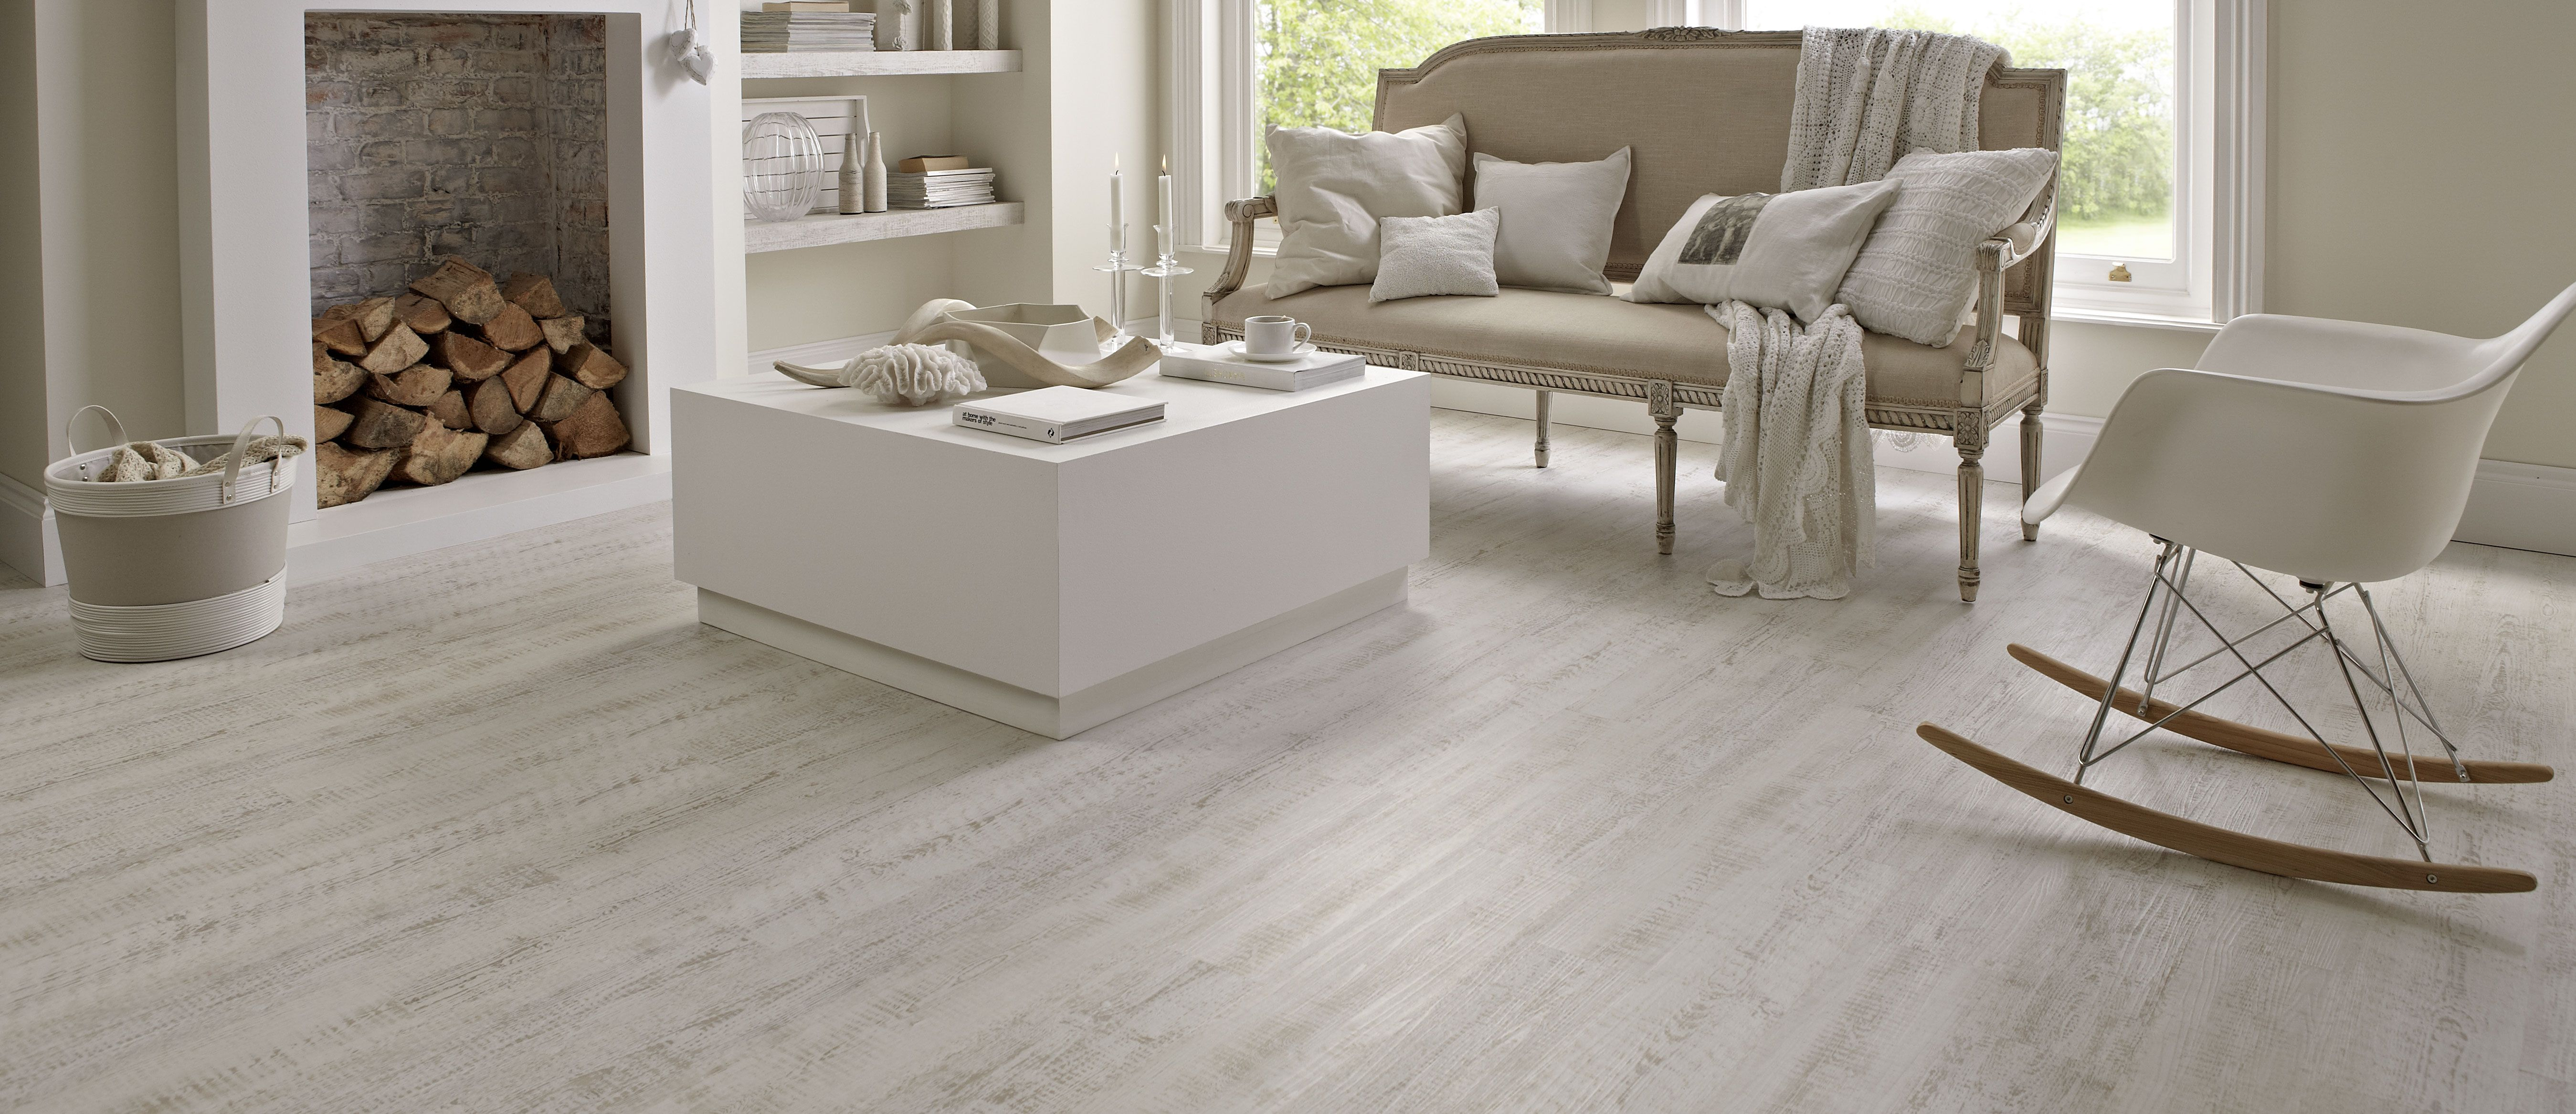 White washed oak hardwood flooring beste awesome inspiration knight tile white painted oak vinyl flooring has a wood effect design with gentle beige undertones dailygadgetfo Gallery